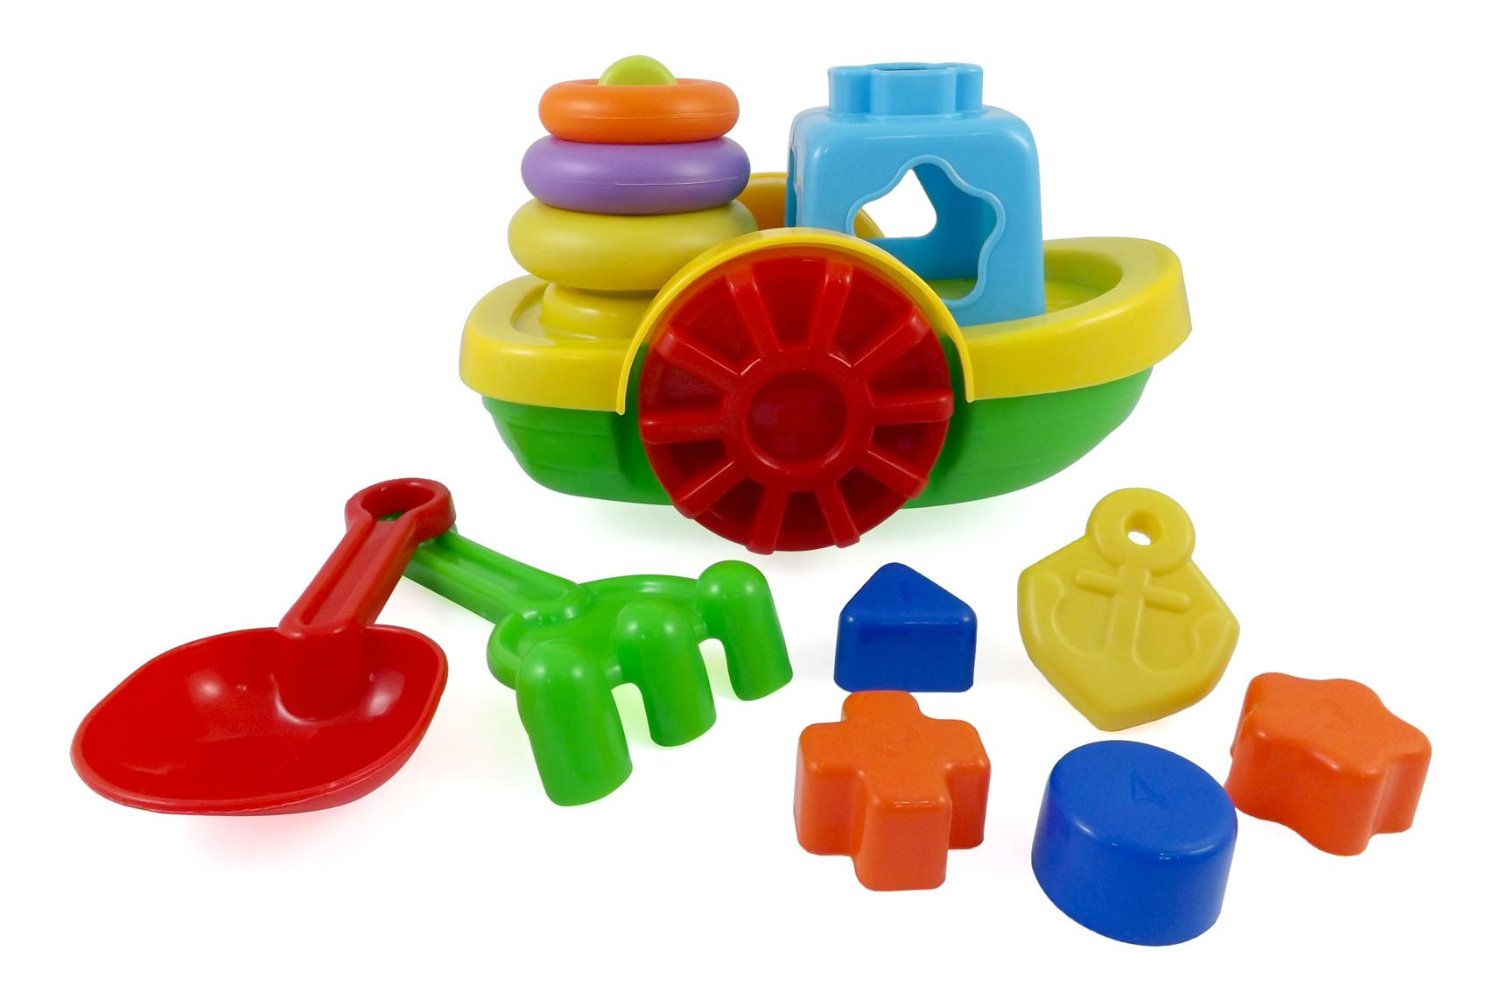 Tugboat Sand Wheels Beach Toy Set only $5.95 (reg $14.95)